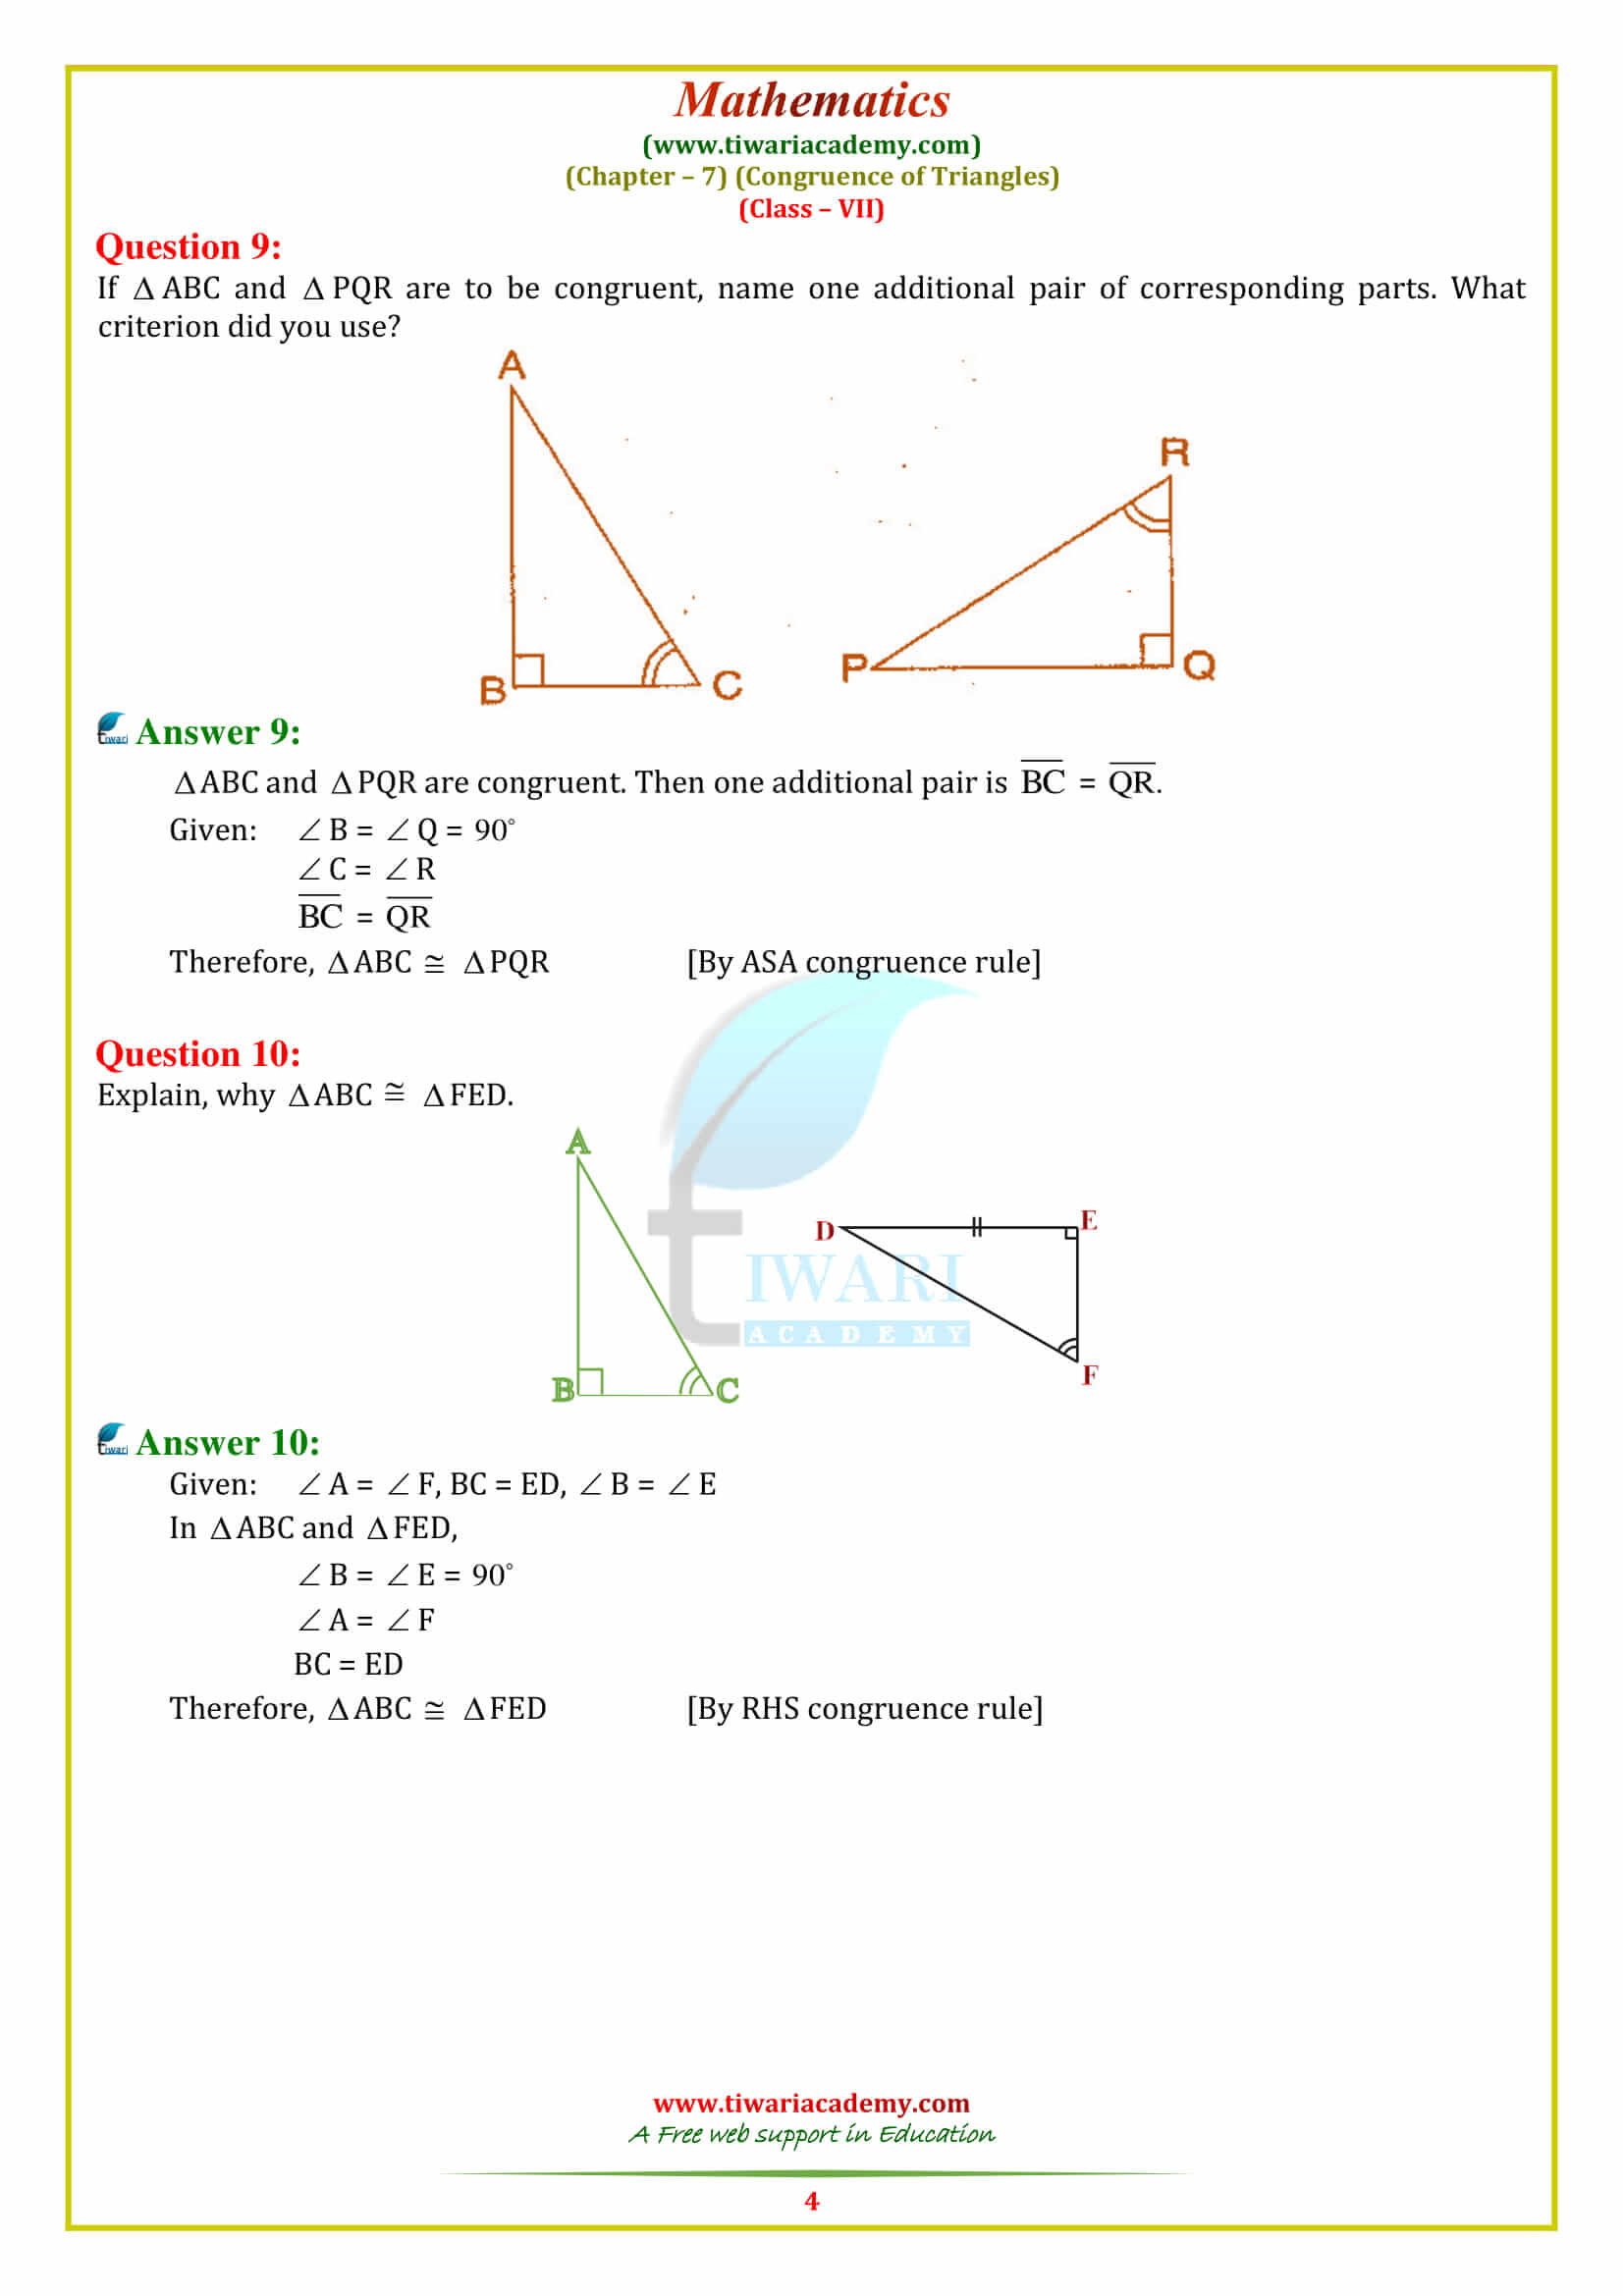 Proving Triangles Congruent Worksheet Answers Worksheet Congruence Triangles for Class 9